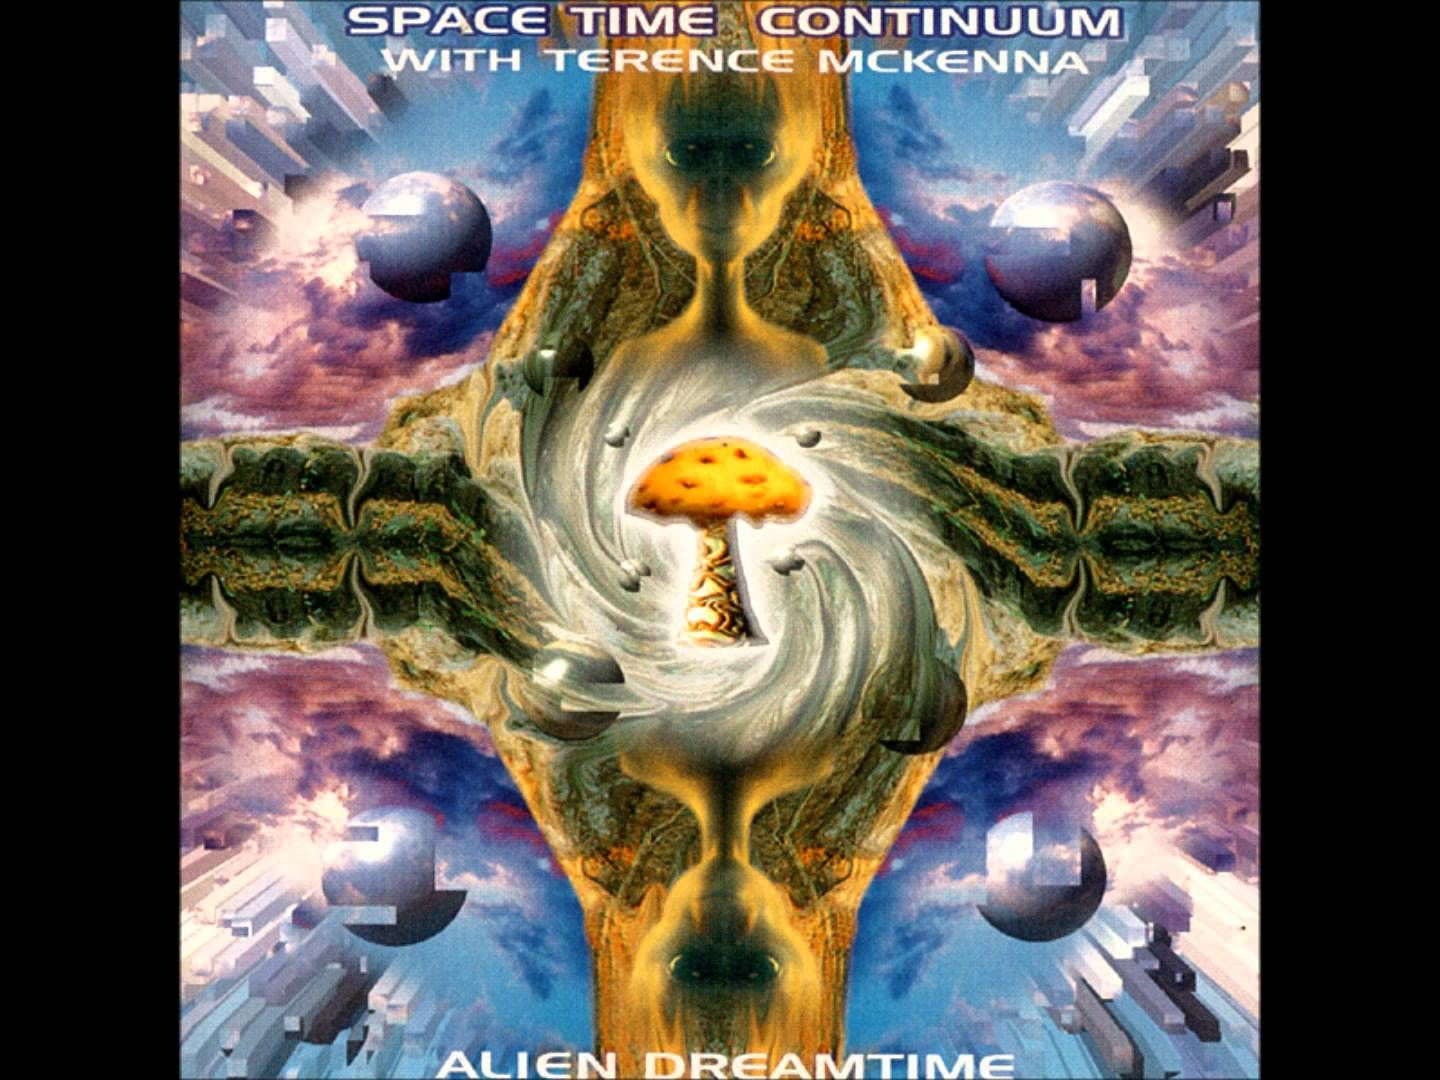 Space Time Continuum with Terence McKenna - Alien Dreamtime [Full Album]